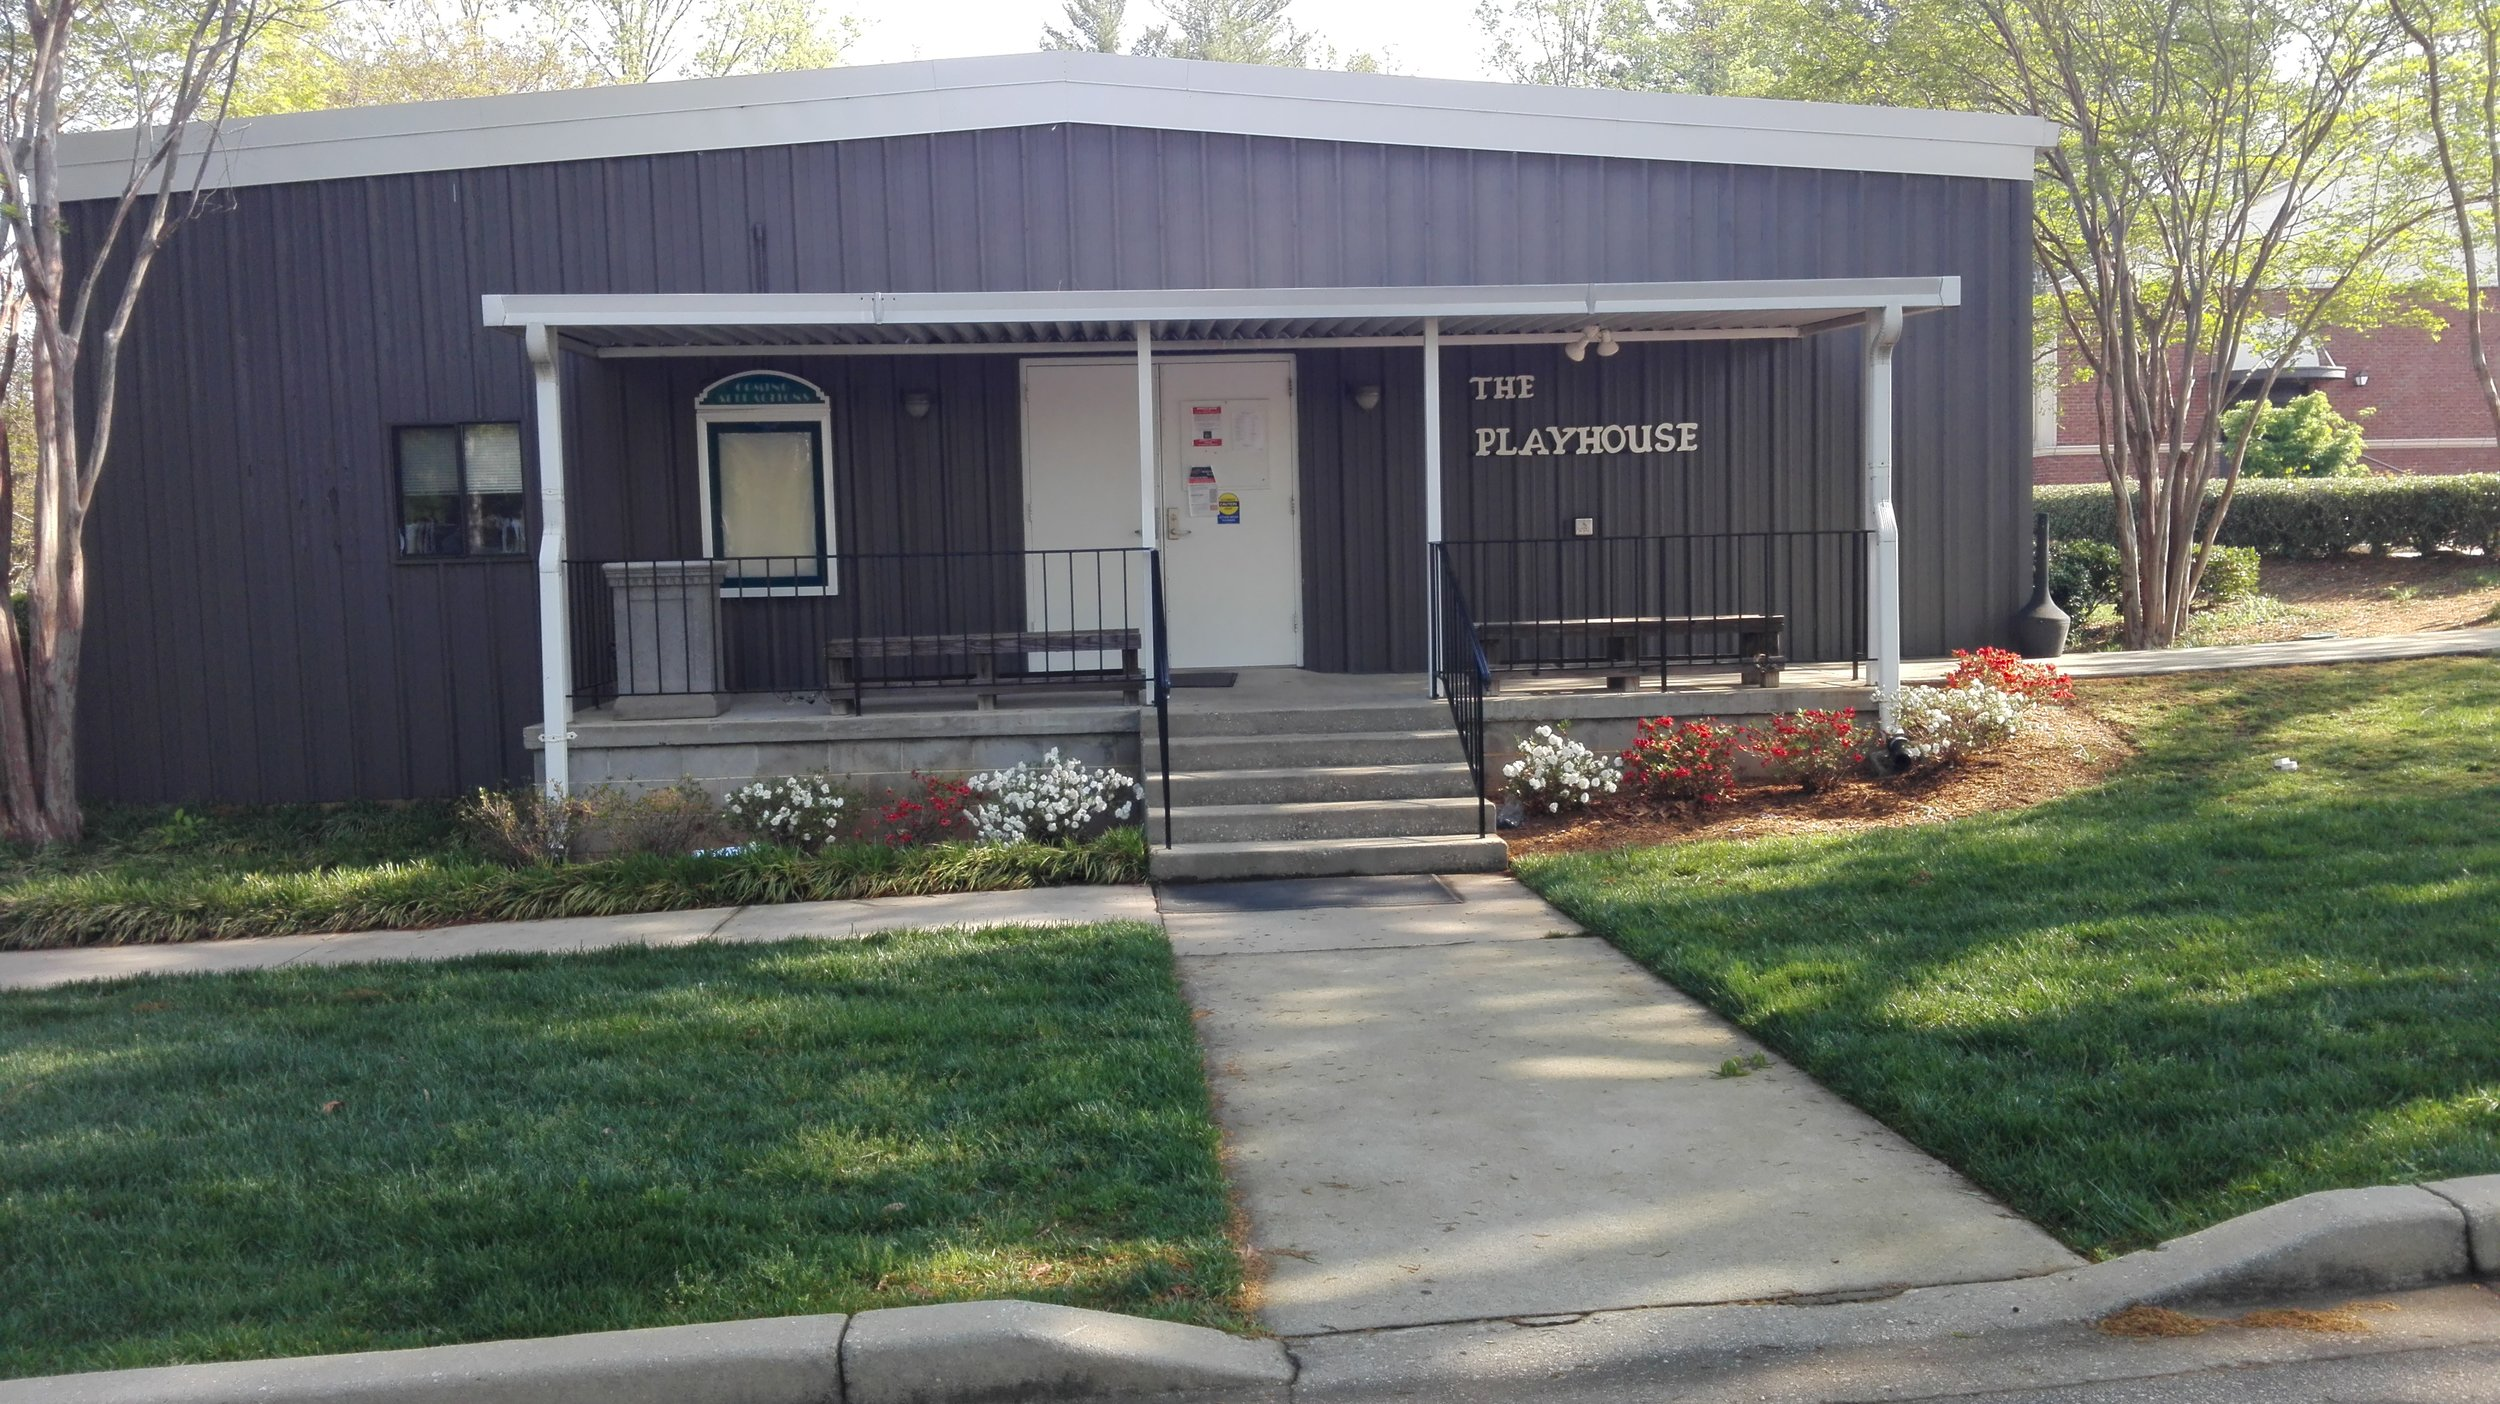 Furman Playhouse, where theatre classes are held and performances take place